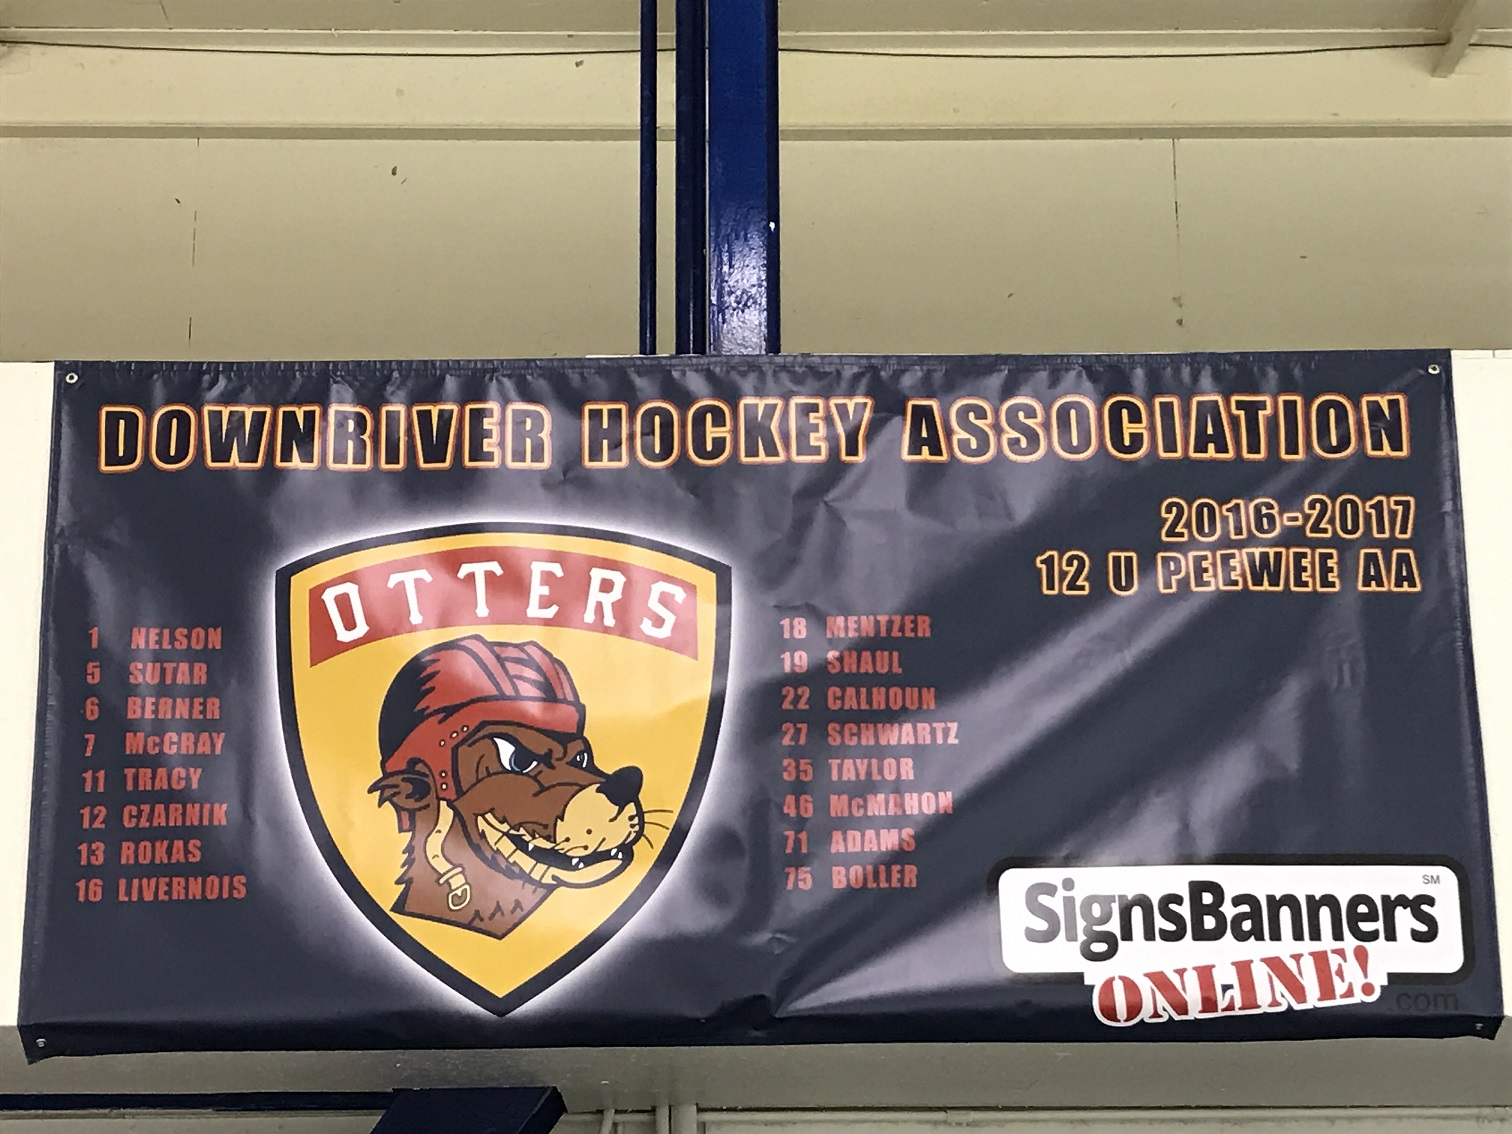 Thank you so very much to Signs and Banners Online for our awesome team banner which now hangs proudly in our rink. From the design process to the product arriving at my door, everything was flawless. The communication was great even when I needed a few changes made. The changes were made quickly and accurately. Thanks again from the Downriver Hockey Association and the 12U Downriver Otters Red Team. You guys rock!